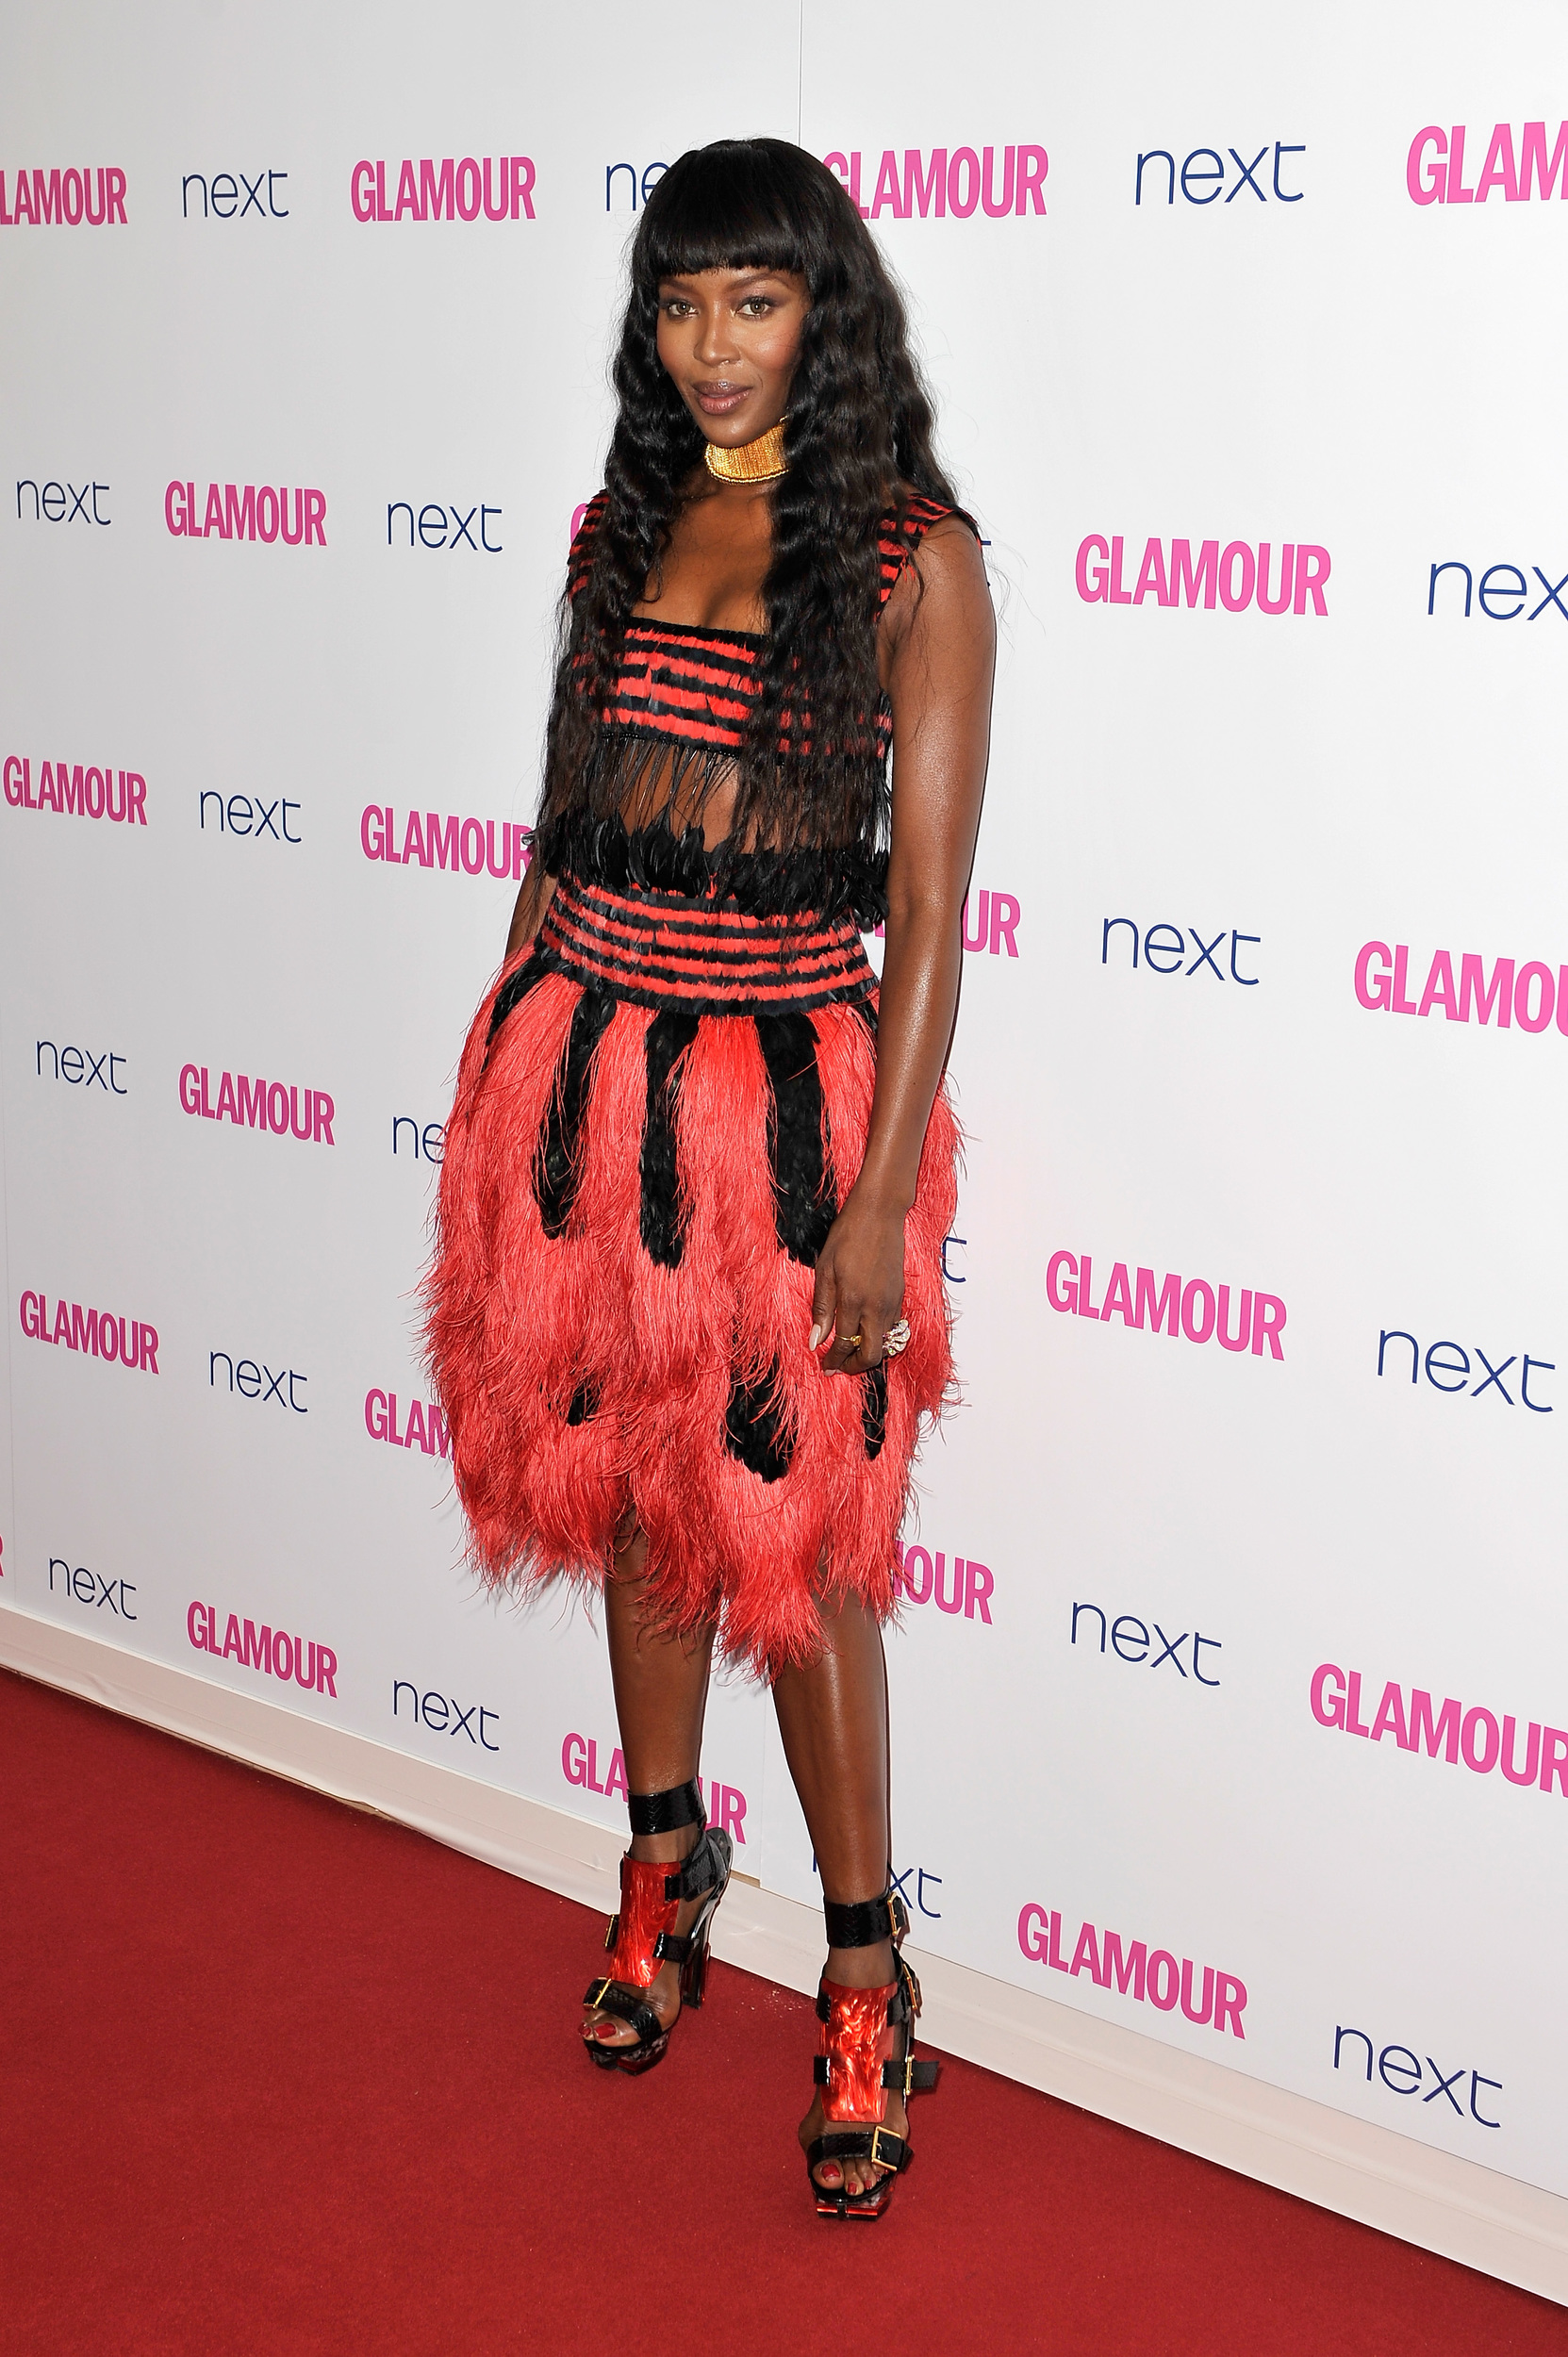 Naomi Campbell in Alexander McQueen Spring 2014 Glamour's Women of the Year Awards. June 2